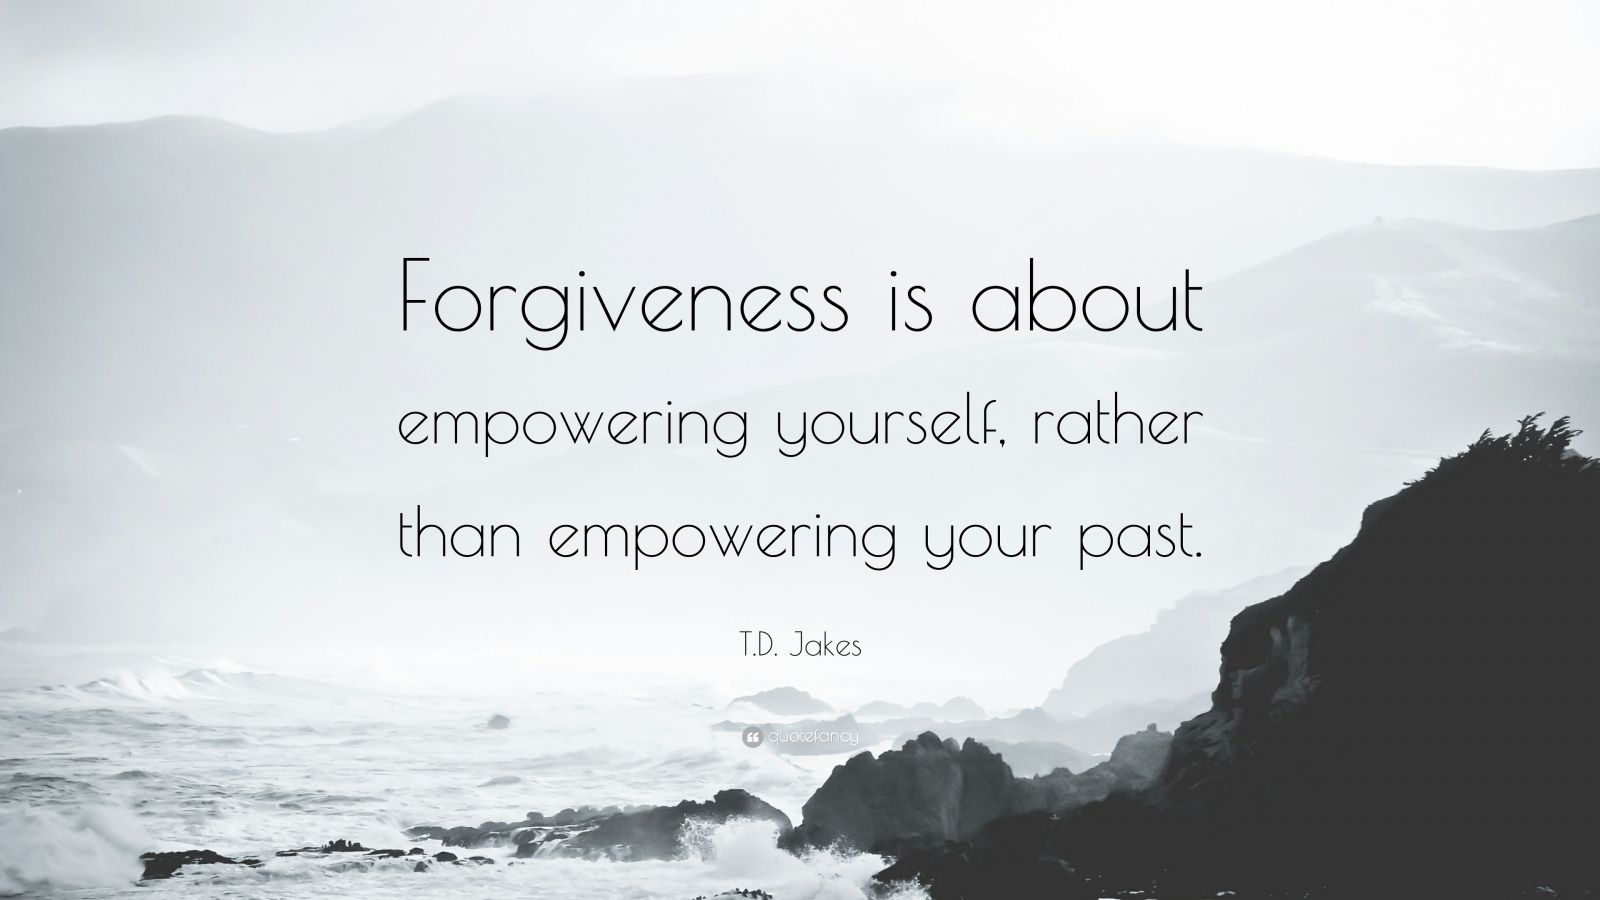 """T.D. Jakes Quote: """"Forgiveness is about empowering yourself, rather than empowering your past."""""""